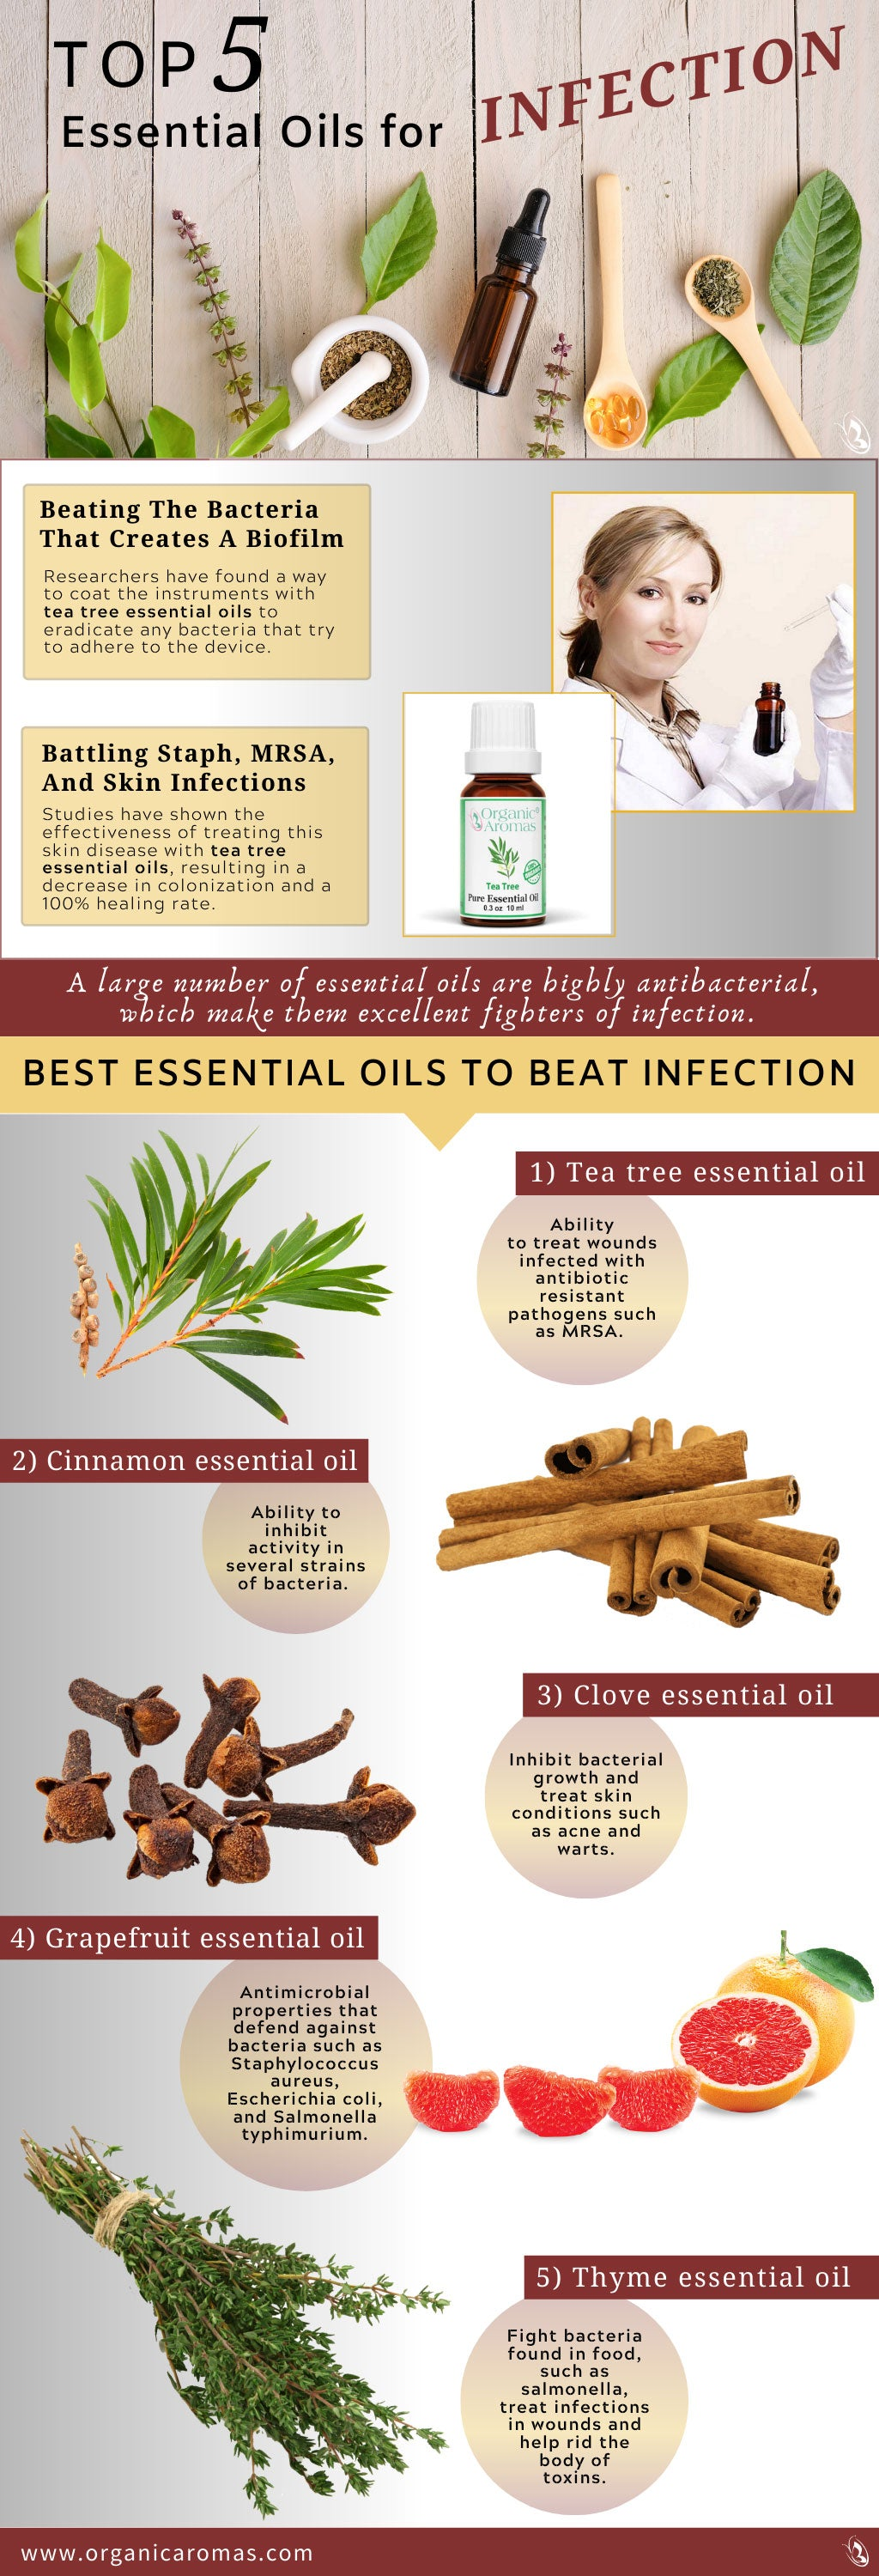 Top 5 Essential Oils For Infection Organic Aromas